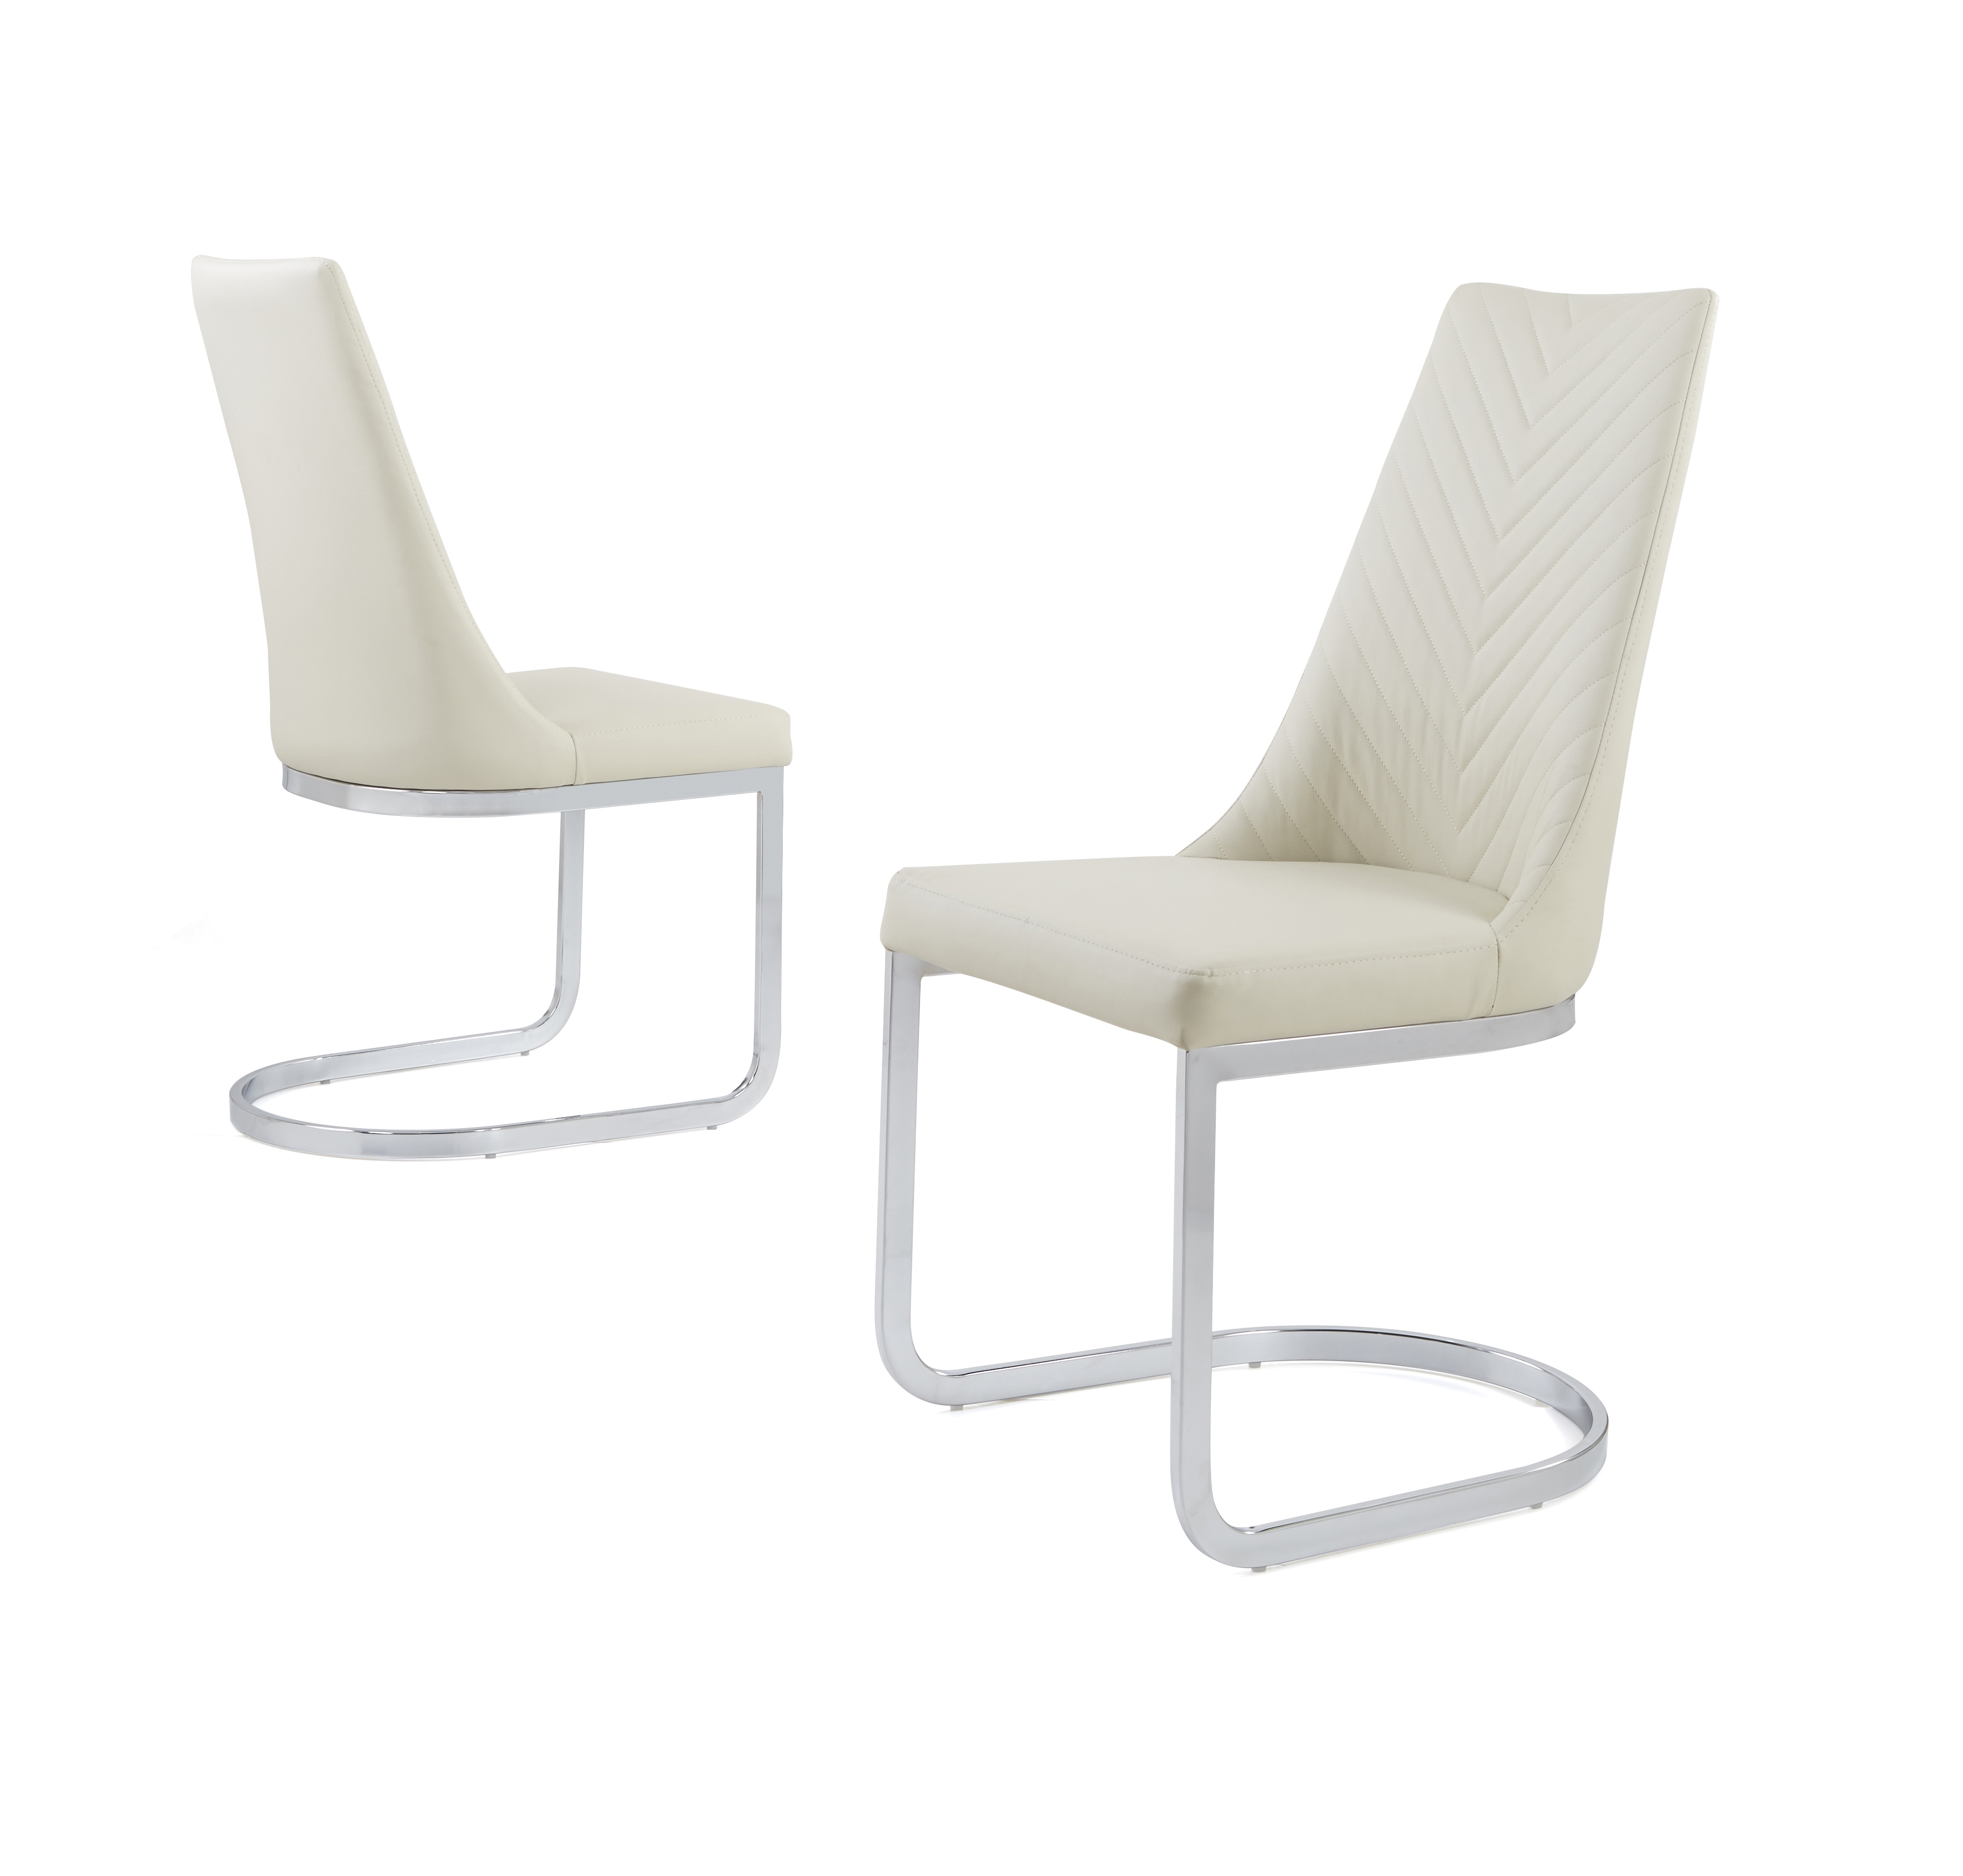 Trendy Curva Cream Leather Dining Chairs Intended For Cream Leather Dining Chairs (View 23 of 25)